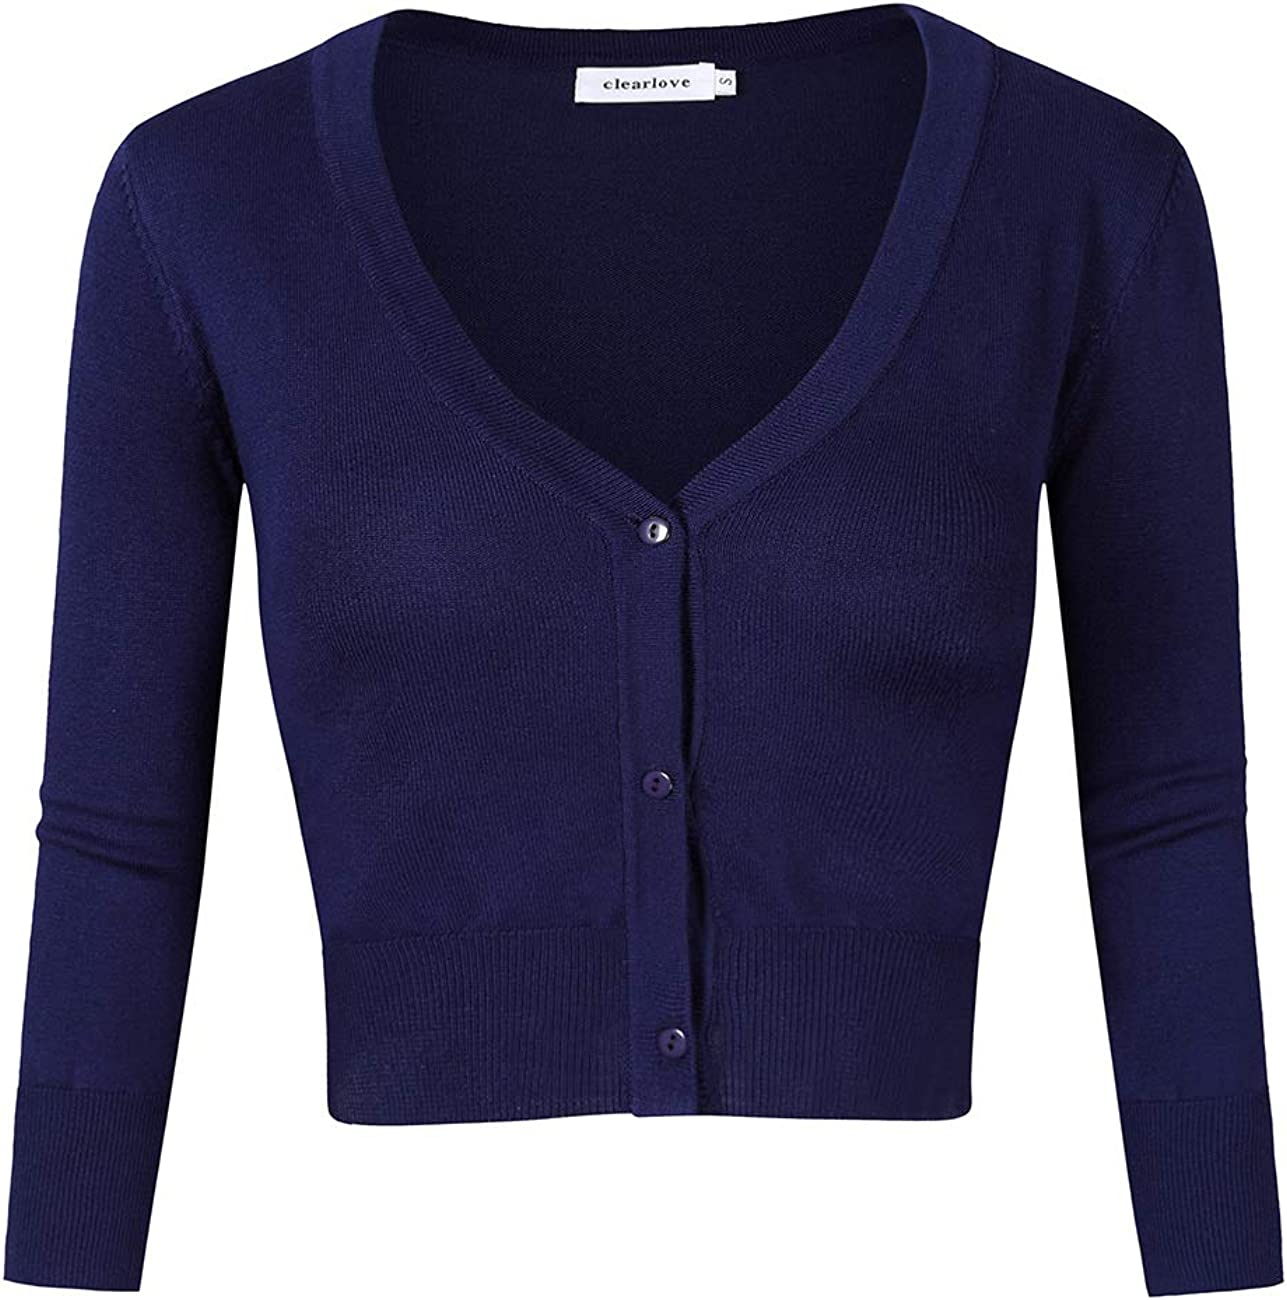 Clearlove Womens Cardigans 3//4 Sleeve Knitted Cropped Cardigan with Three Buttons